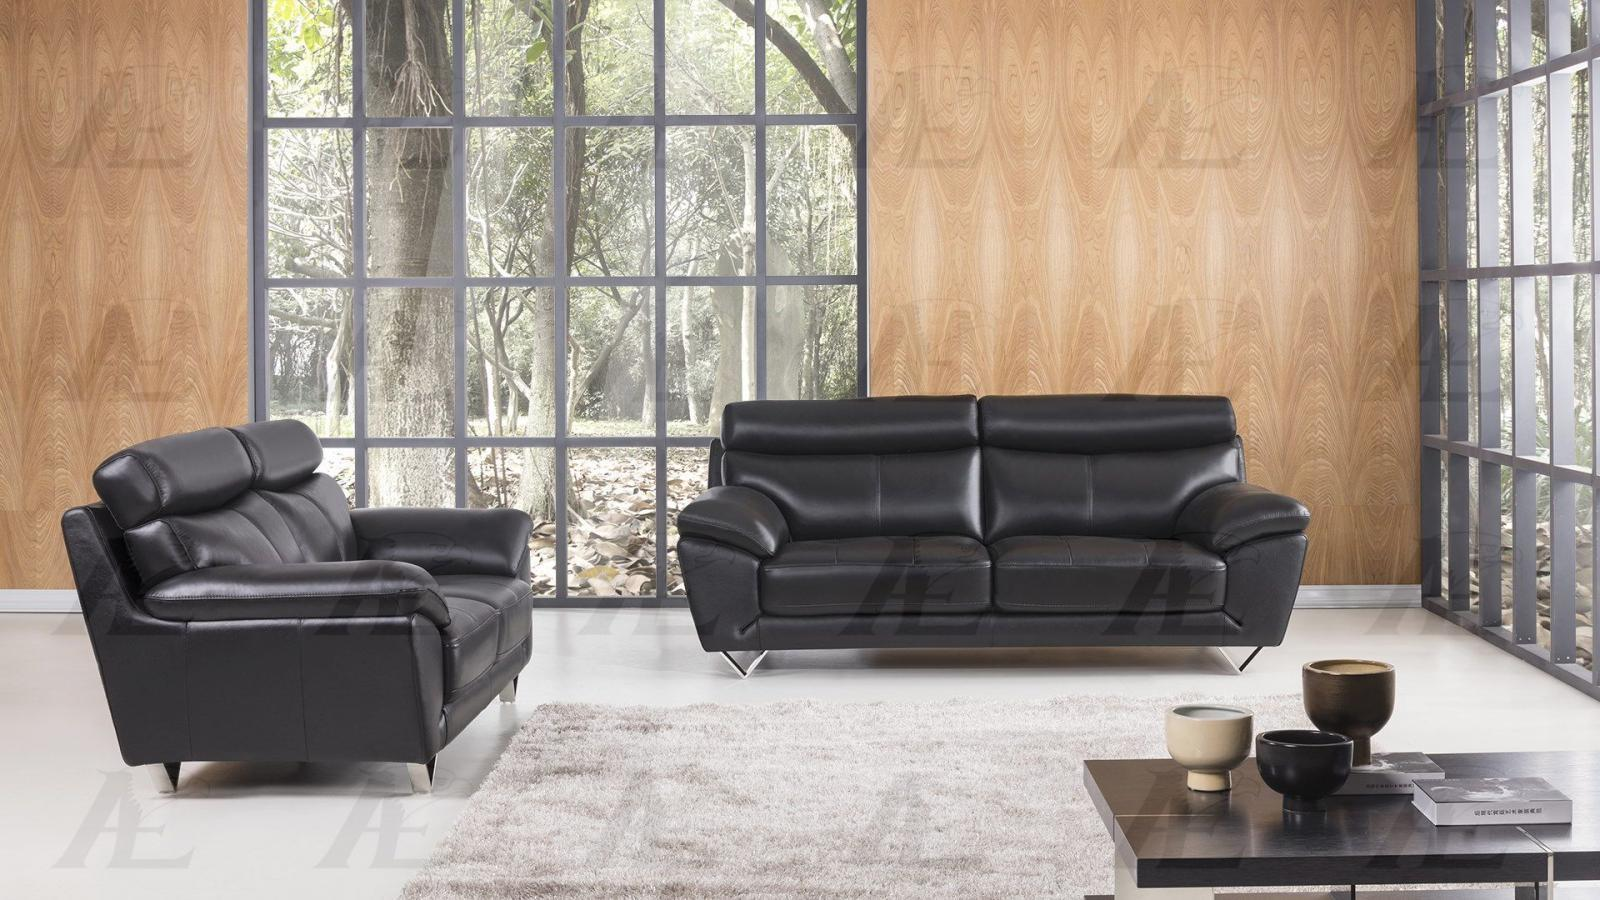 American Eagle EK078 Contemporary Black Italian Leather Living Room Sofa Set 2pc